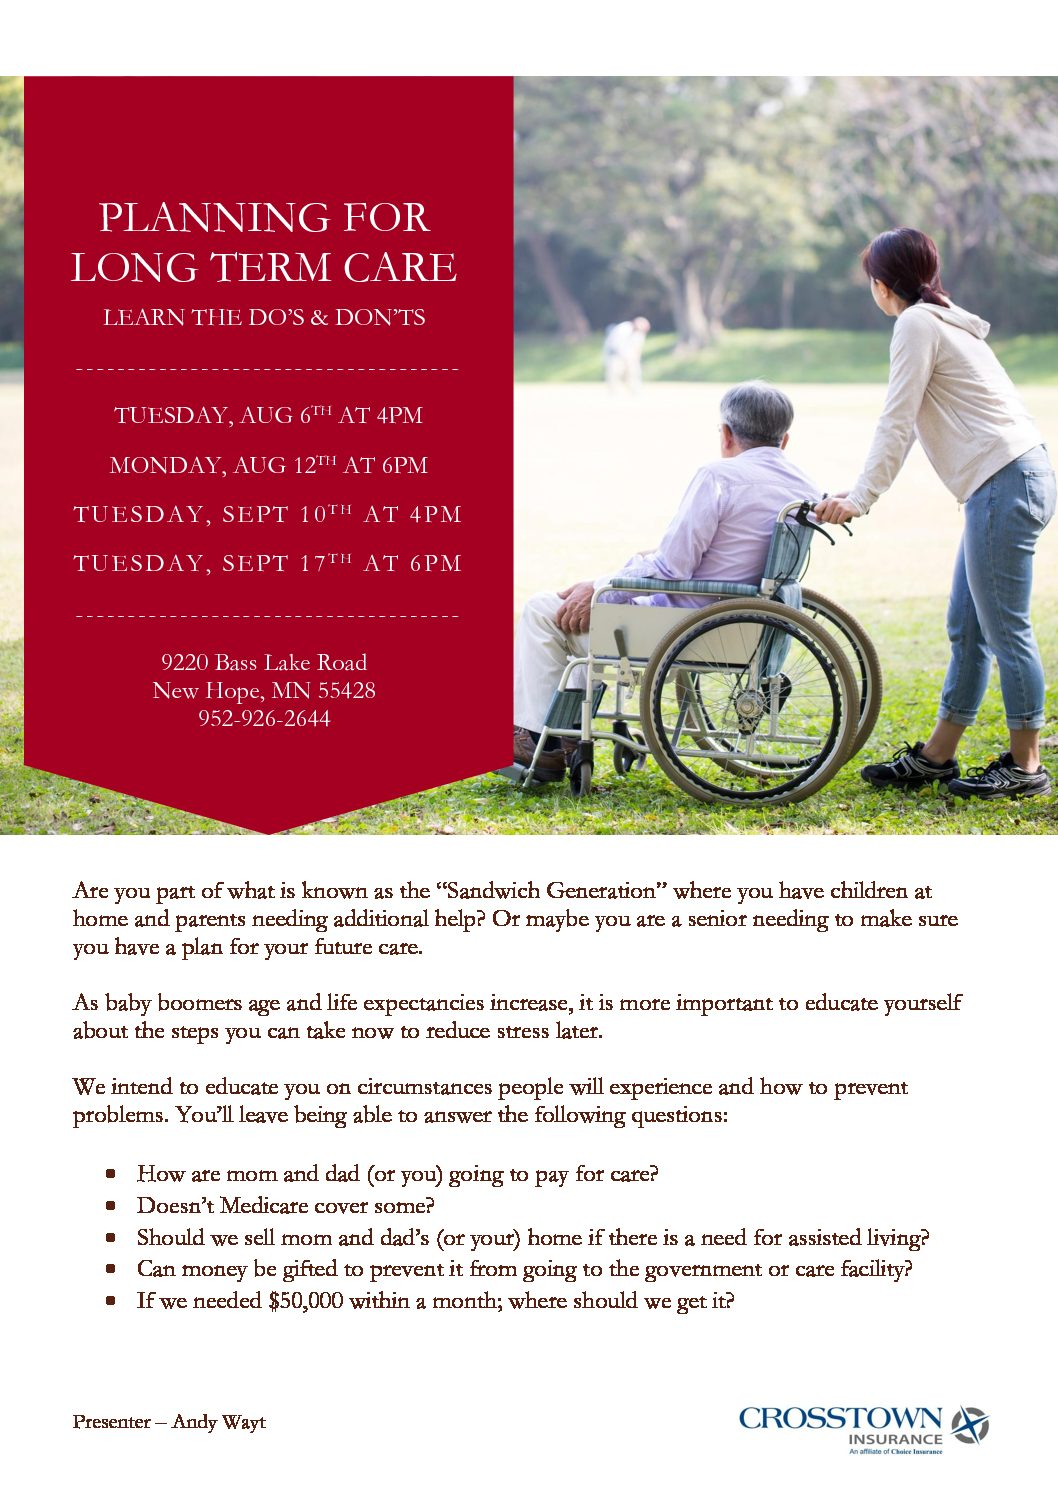 Planning for Long Term Care - Crosstown Insurance